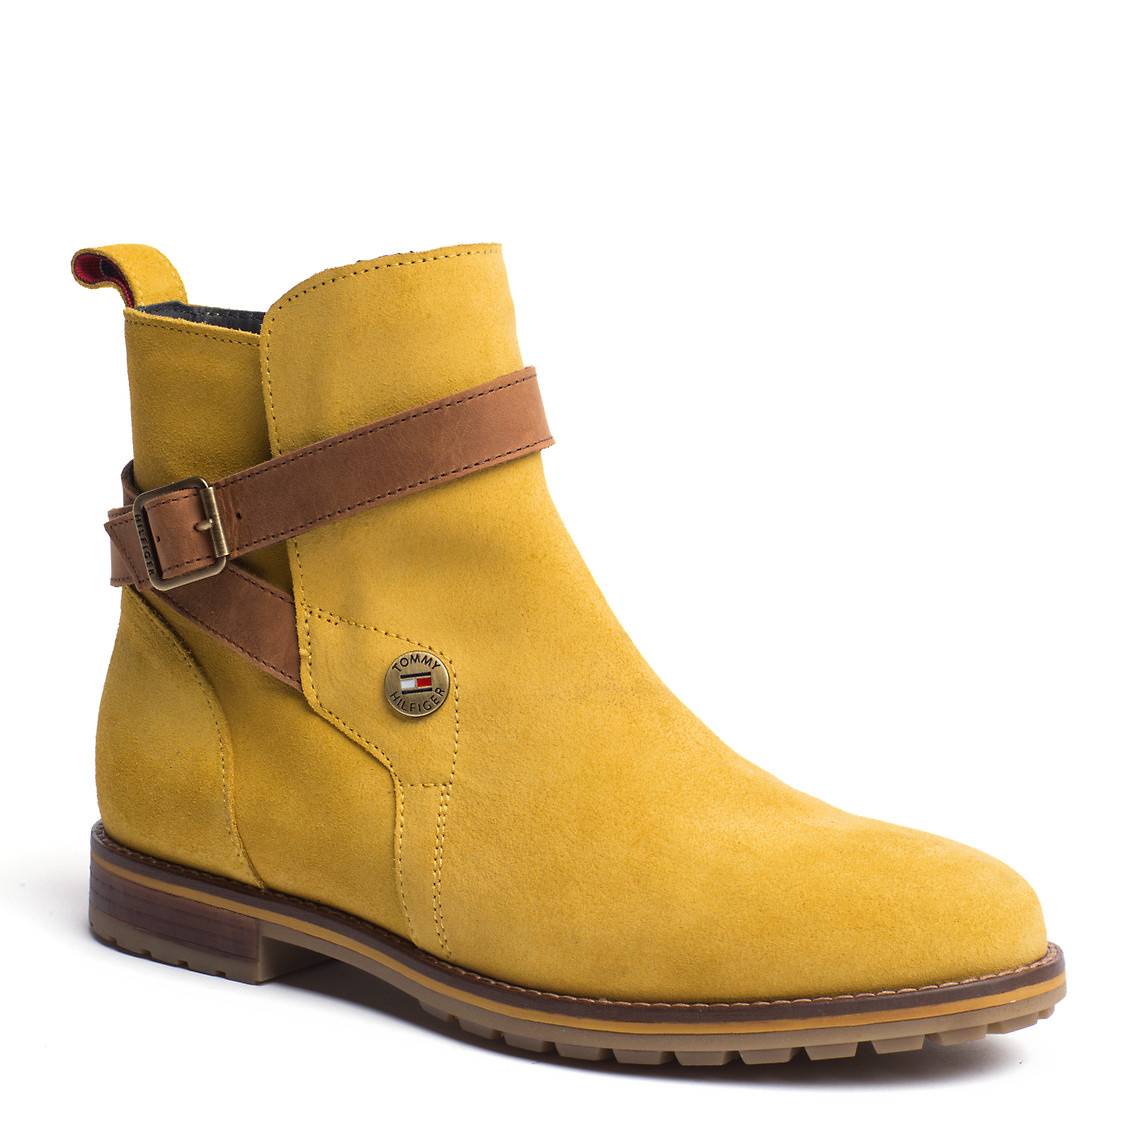 tommy hilfiger winona ankle boots in yellow lemon curry. Black Bedroom Furniture Sets. Home Design Ideas